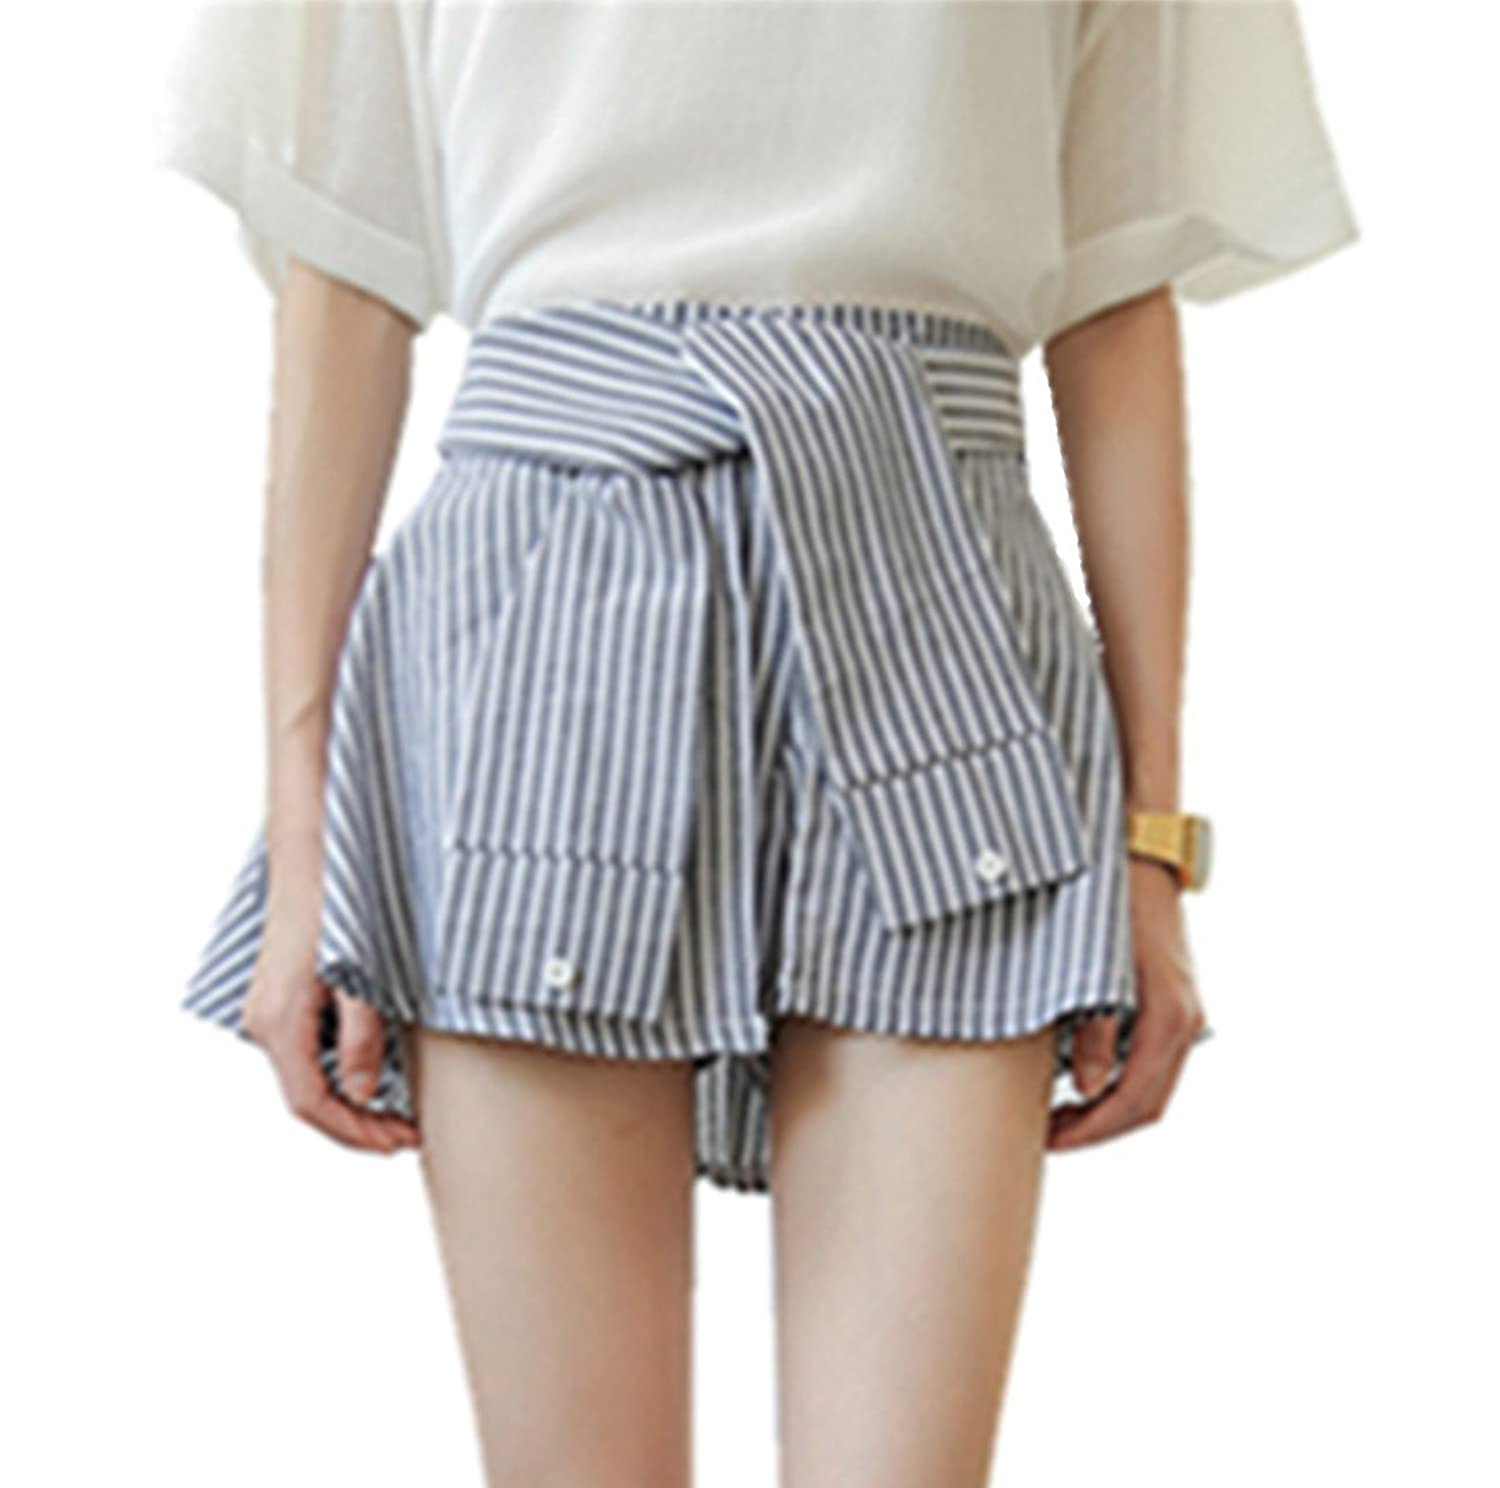 Sunflower@Fashion Womens Ladies Vertical stripes Pompon culottes shorts/skirts